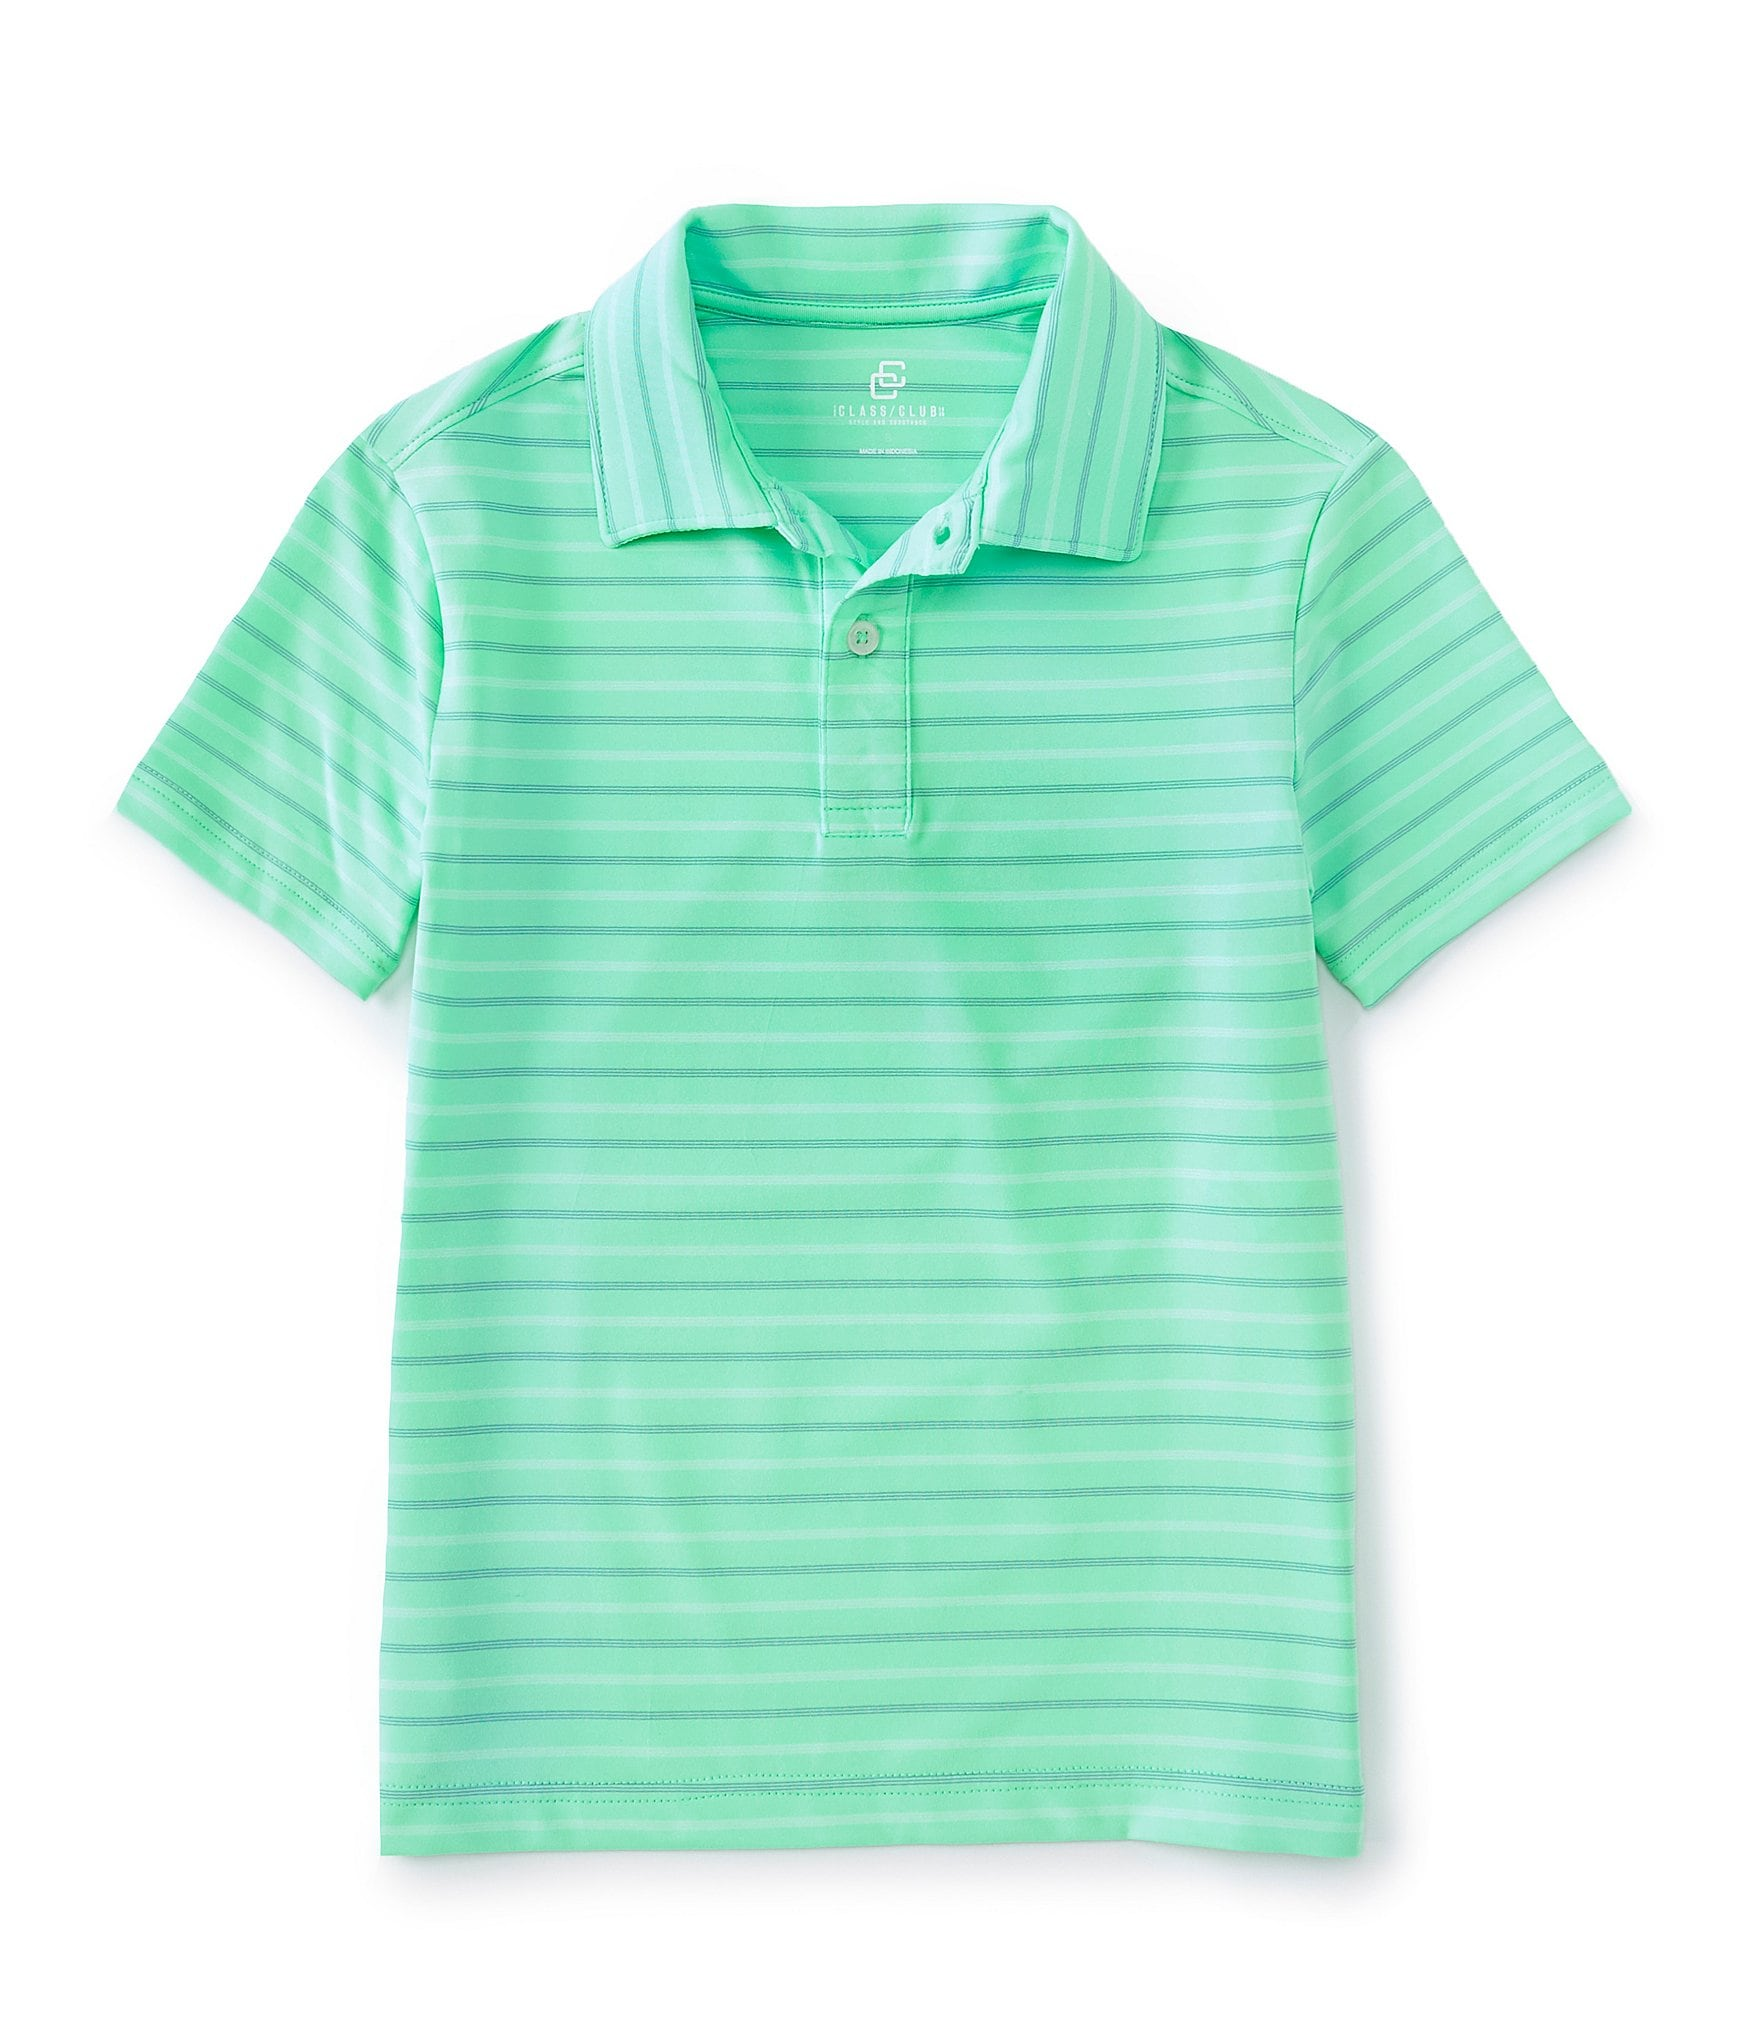 Red or Blue Thin Stripes Solid Blue Under Armour Boys Size 4,5,6,7 Polo Shirt